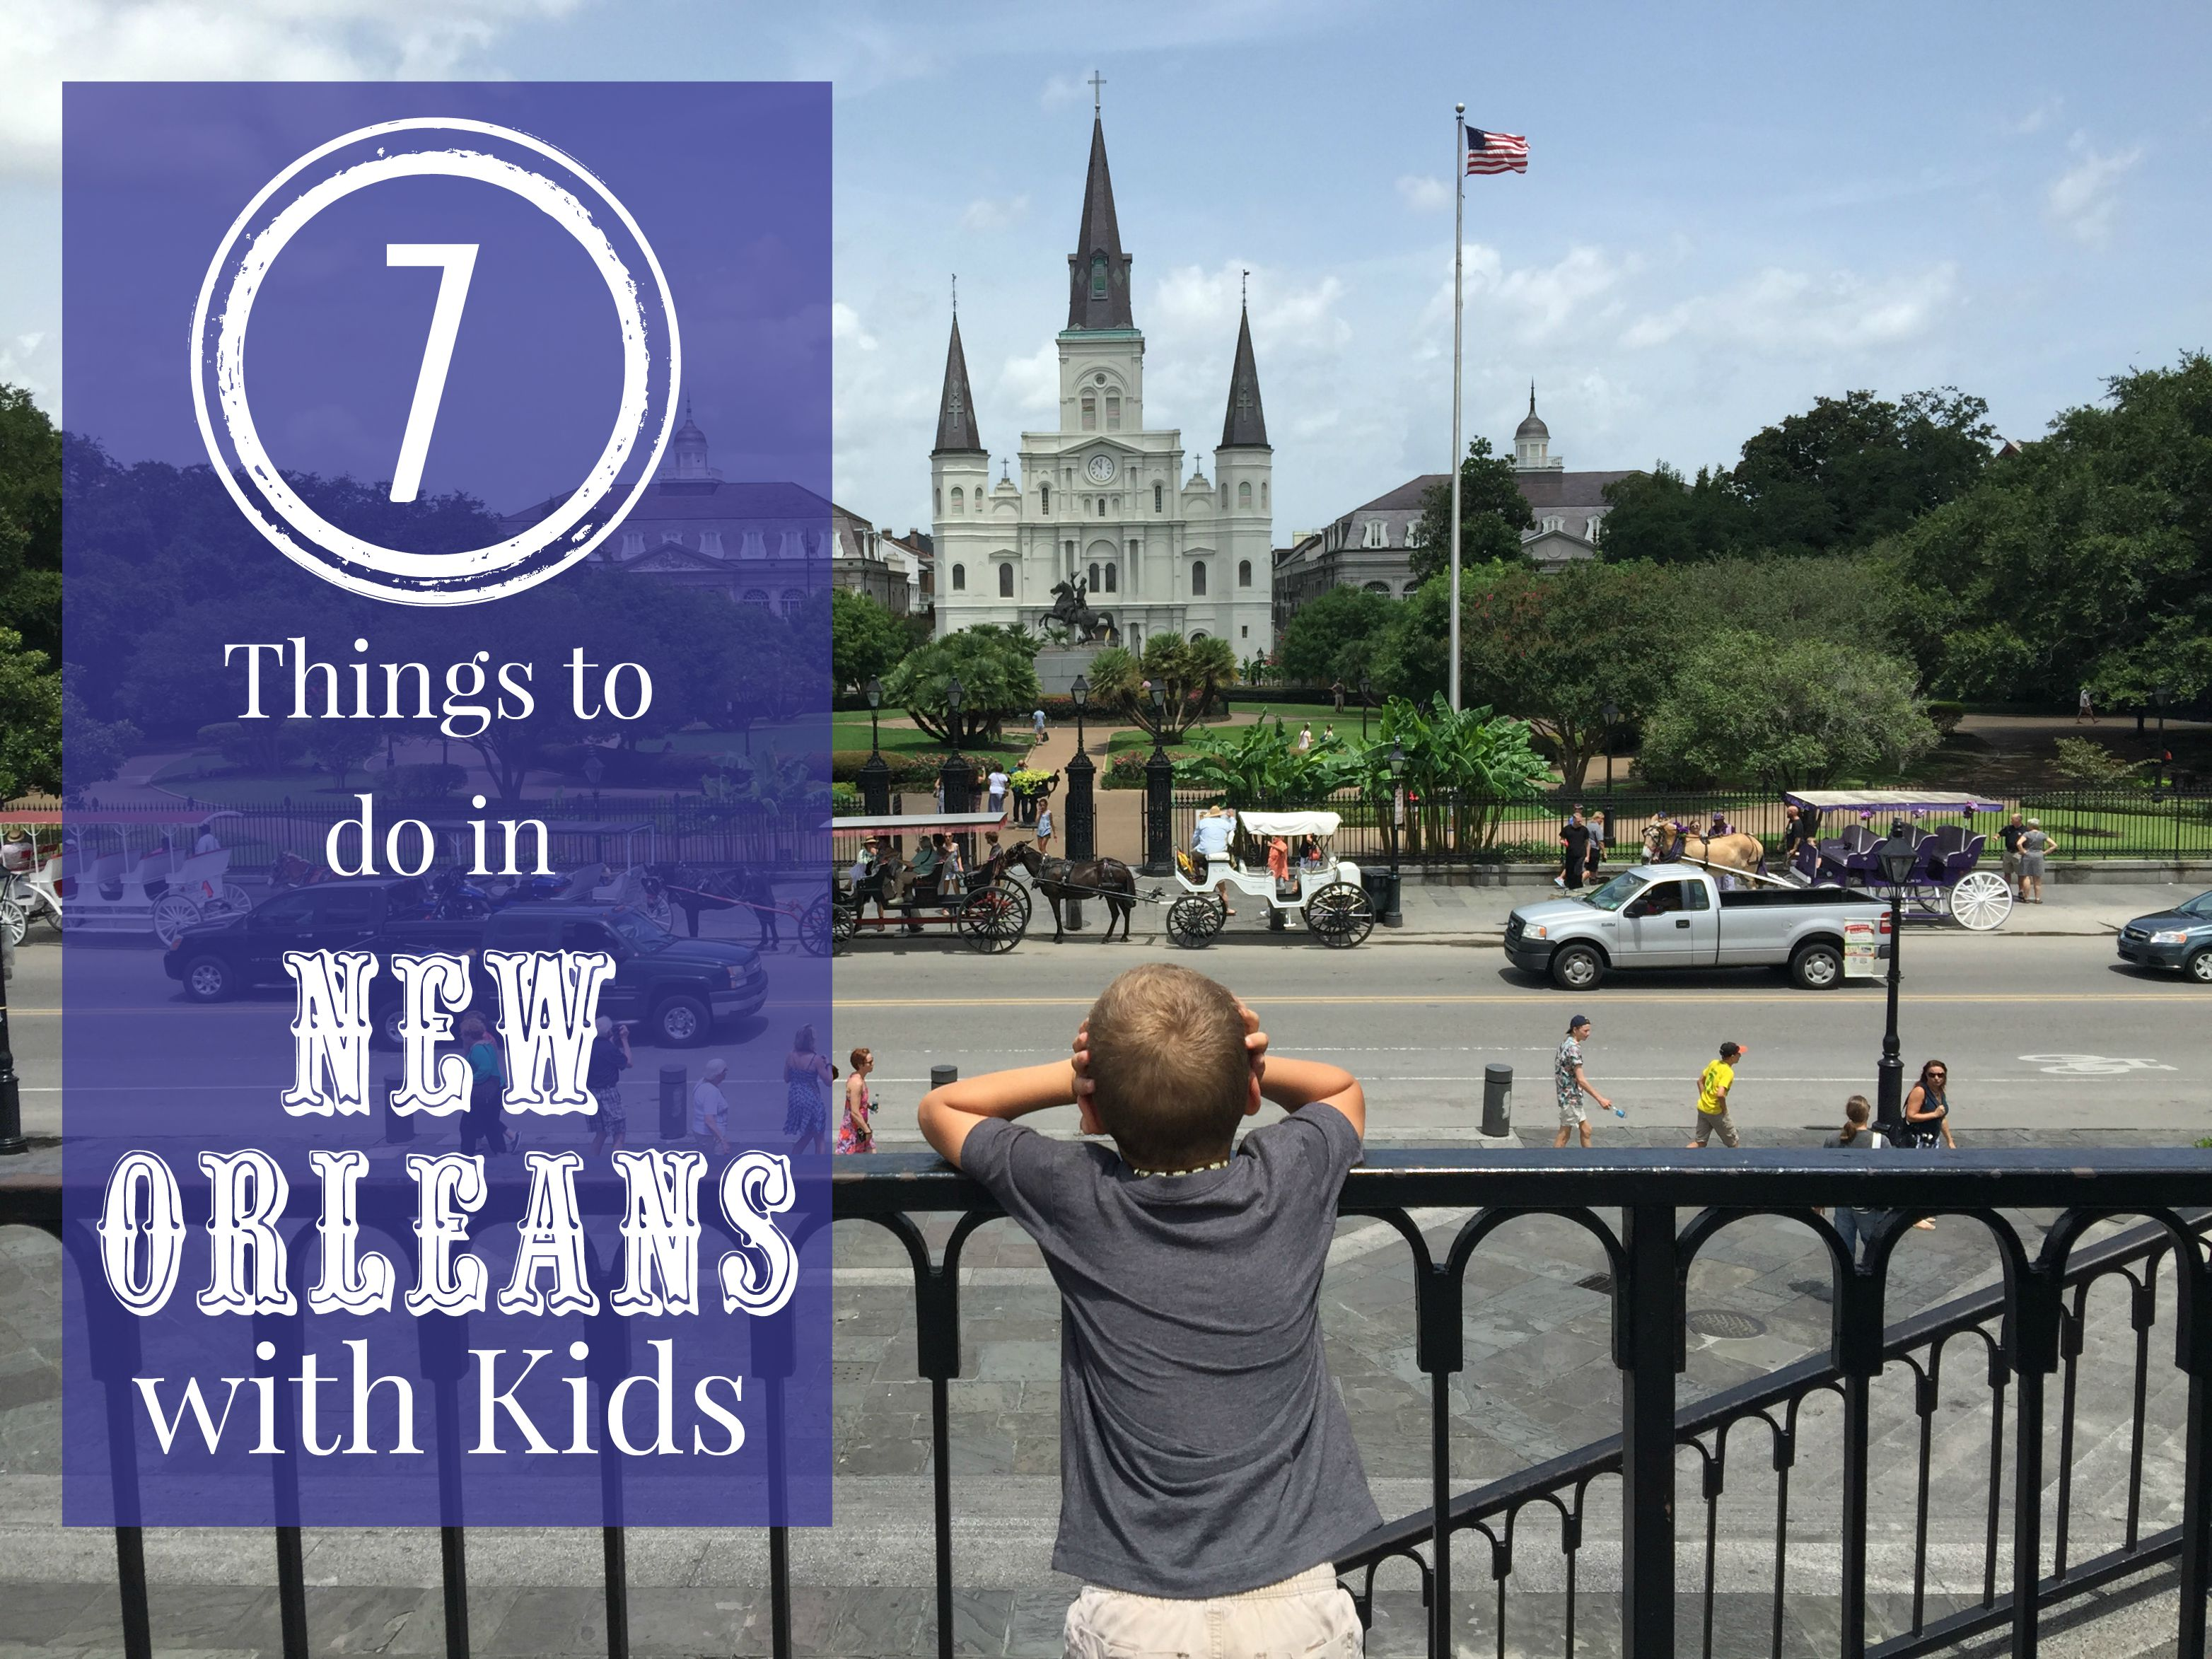 7 Things to do in New Orleans with kids